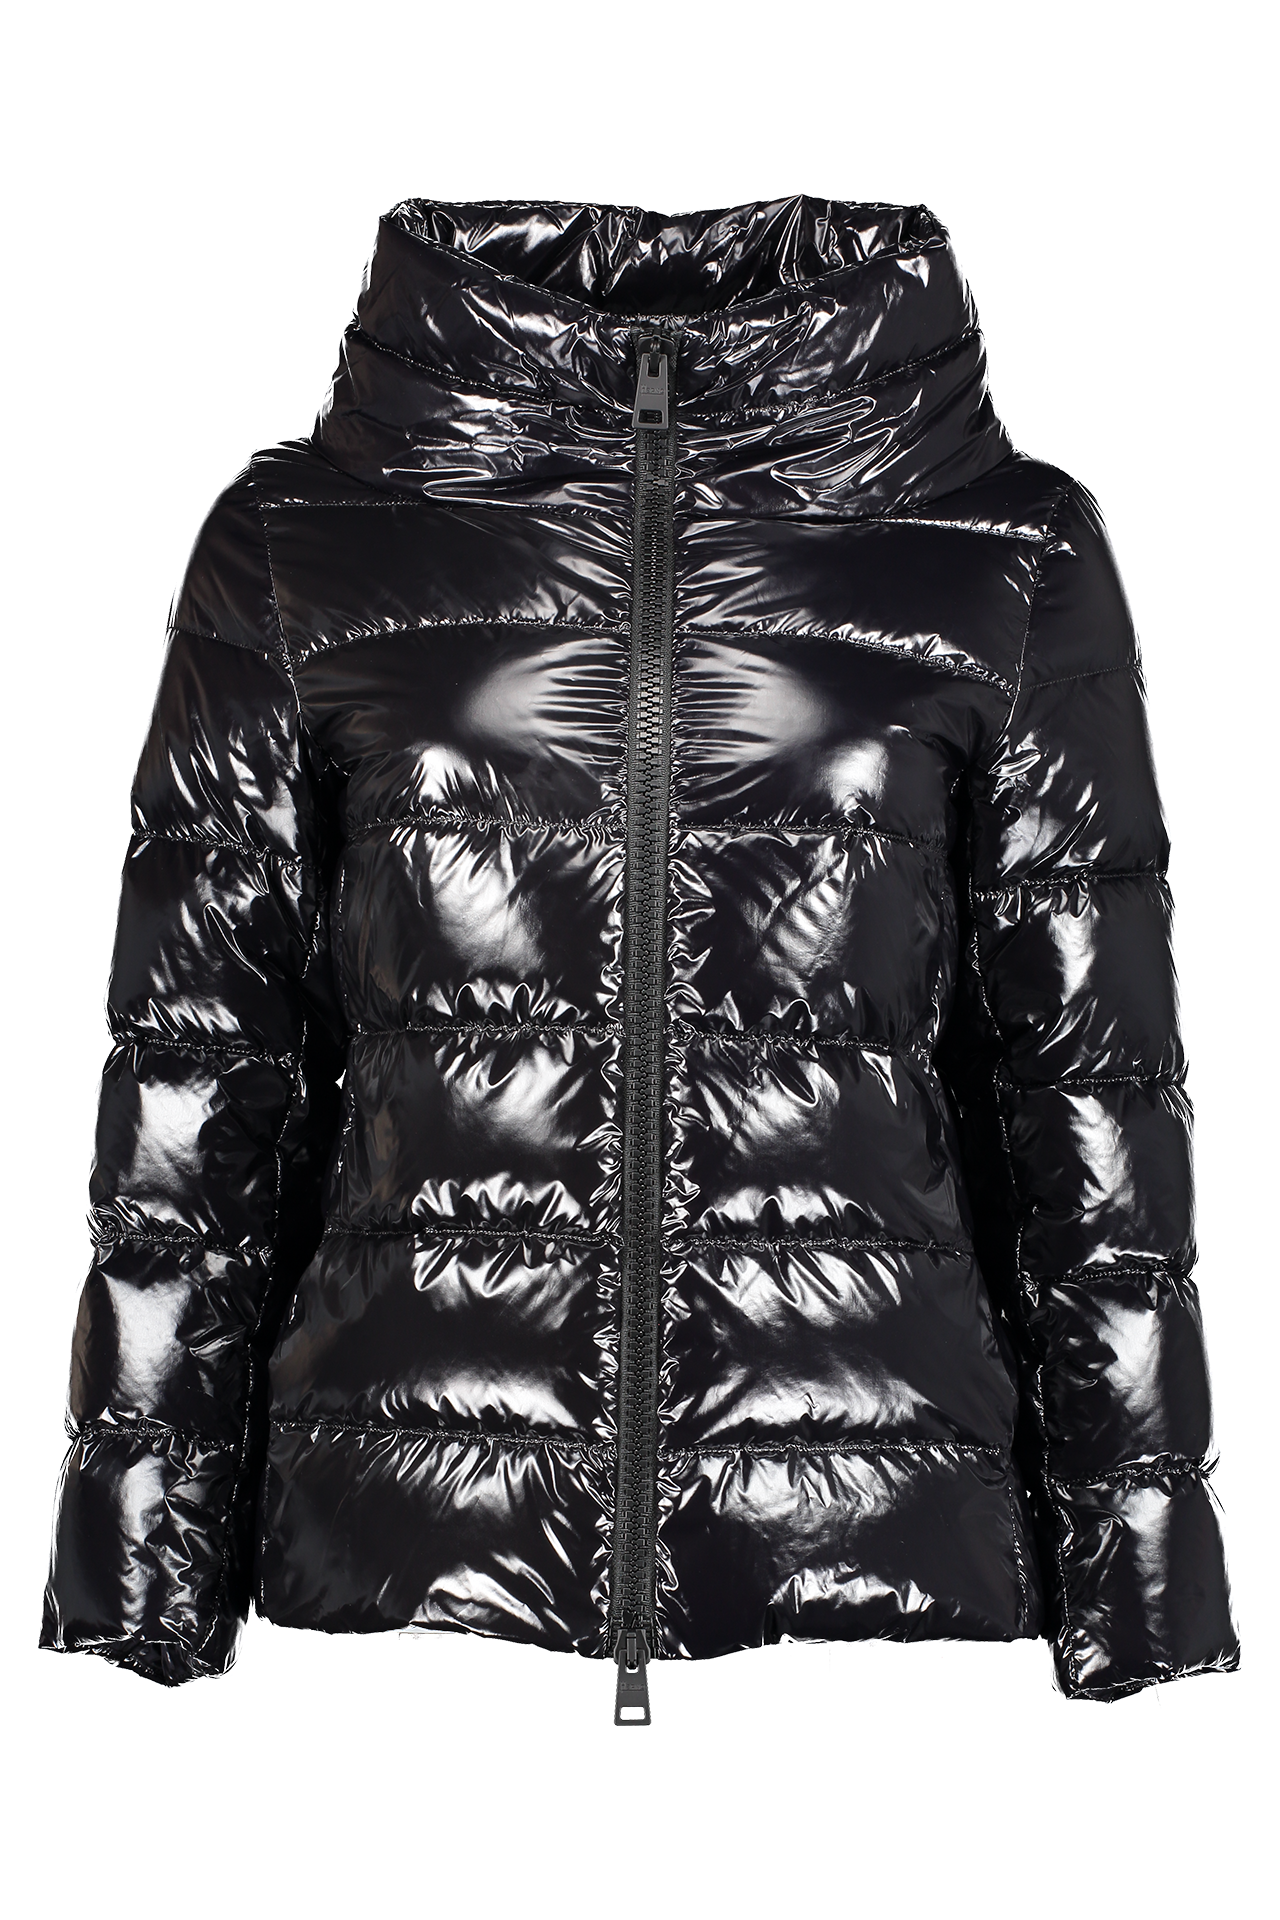 Front image of Herno Women's Gloss 3/4 Sleeve Jacket Black